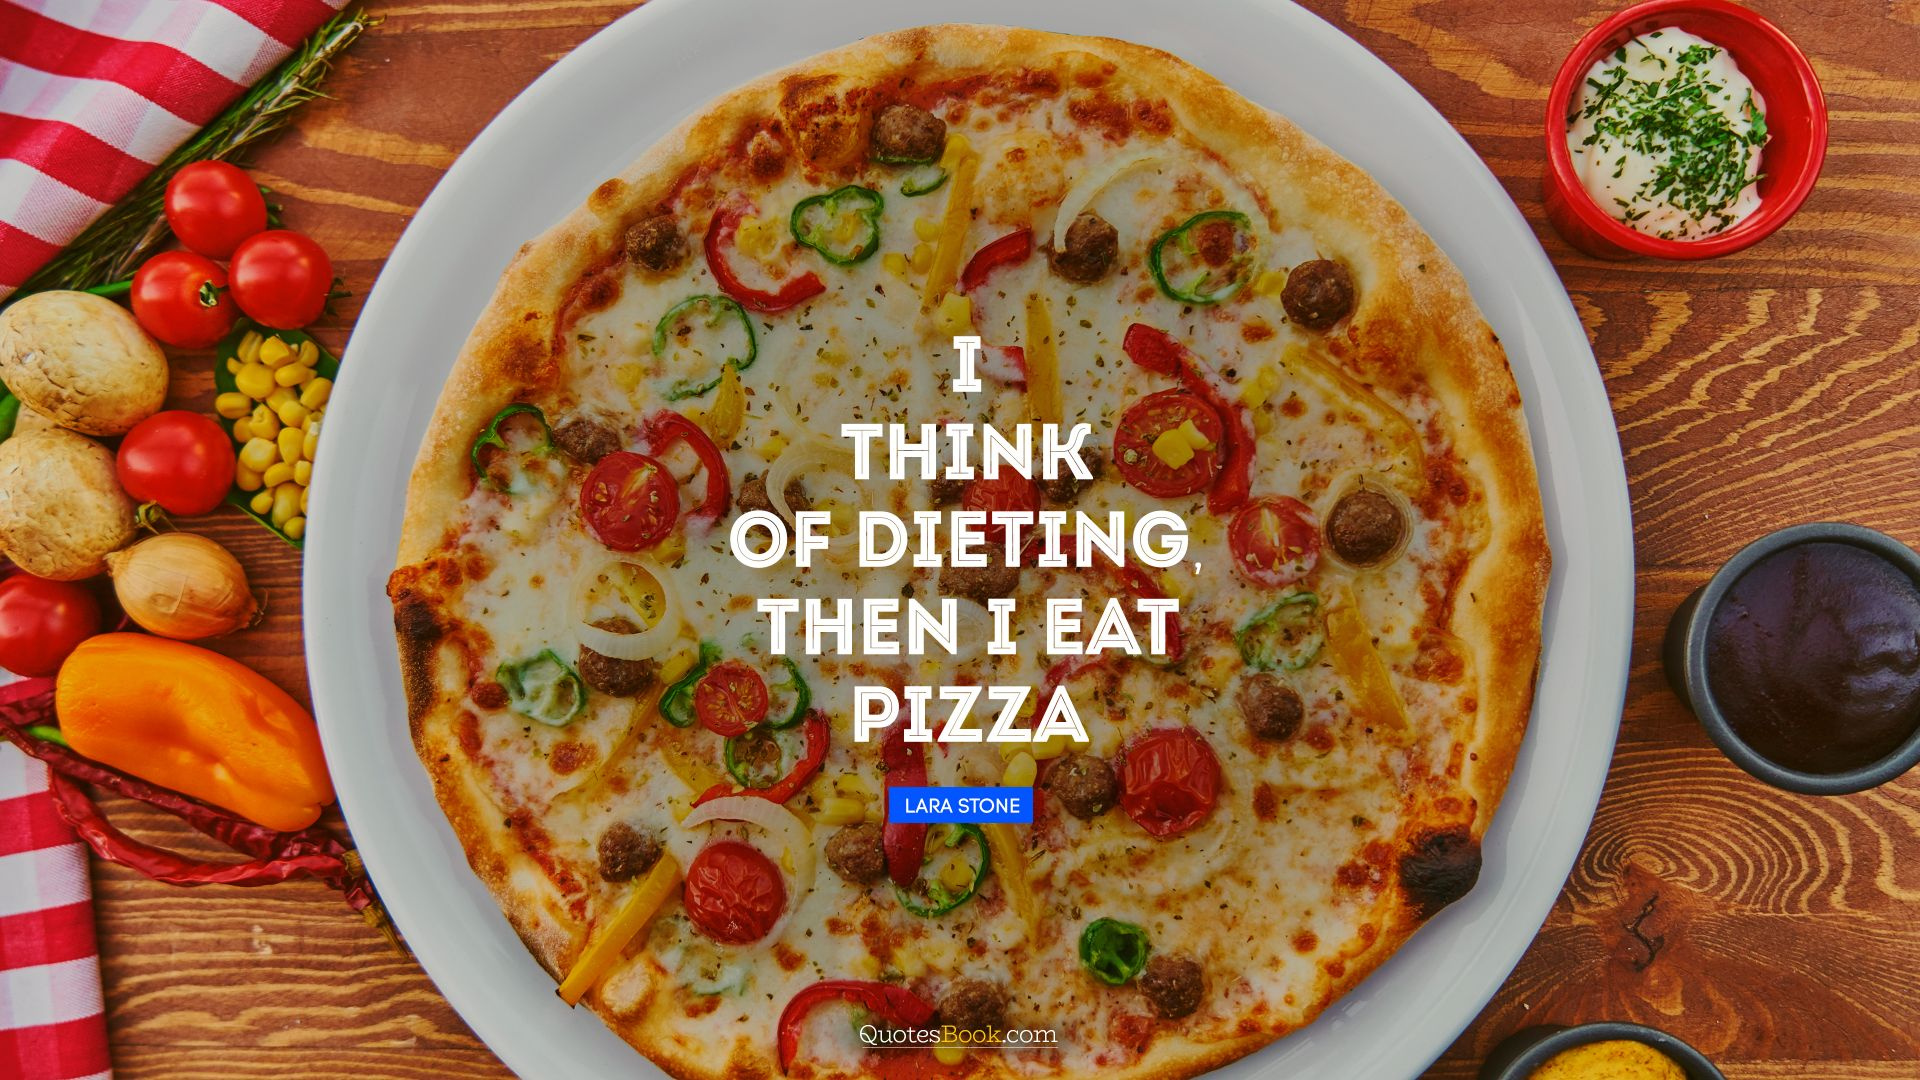 I think of dieting, then I eat pizza. - Quote by Lara Stone